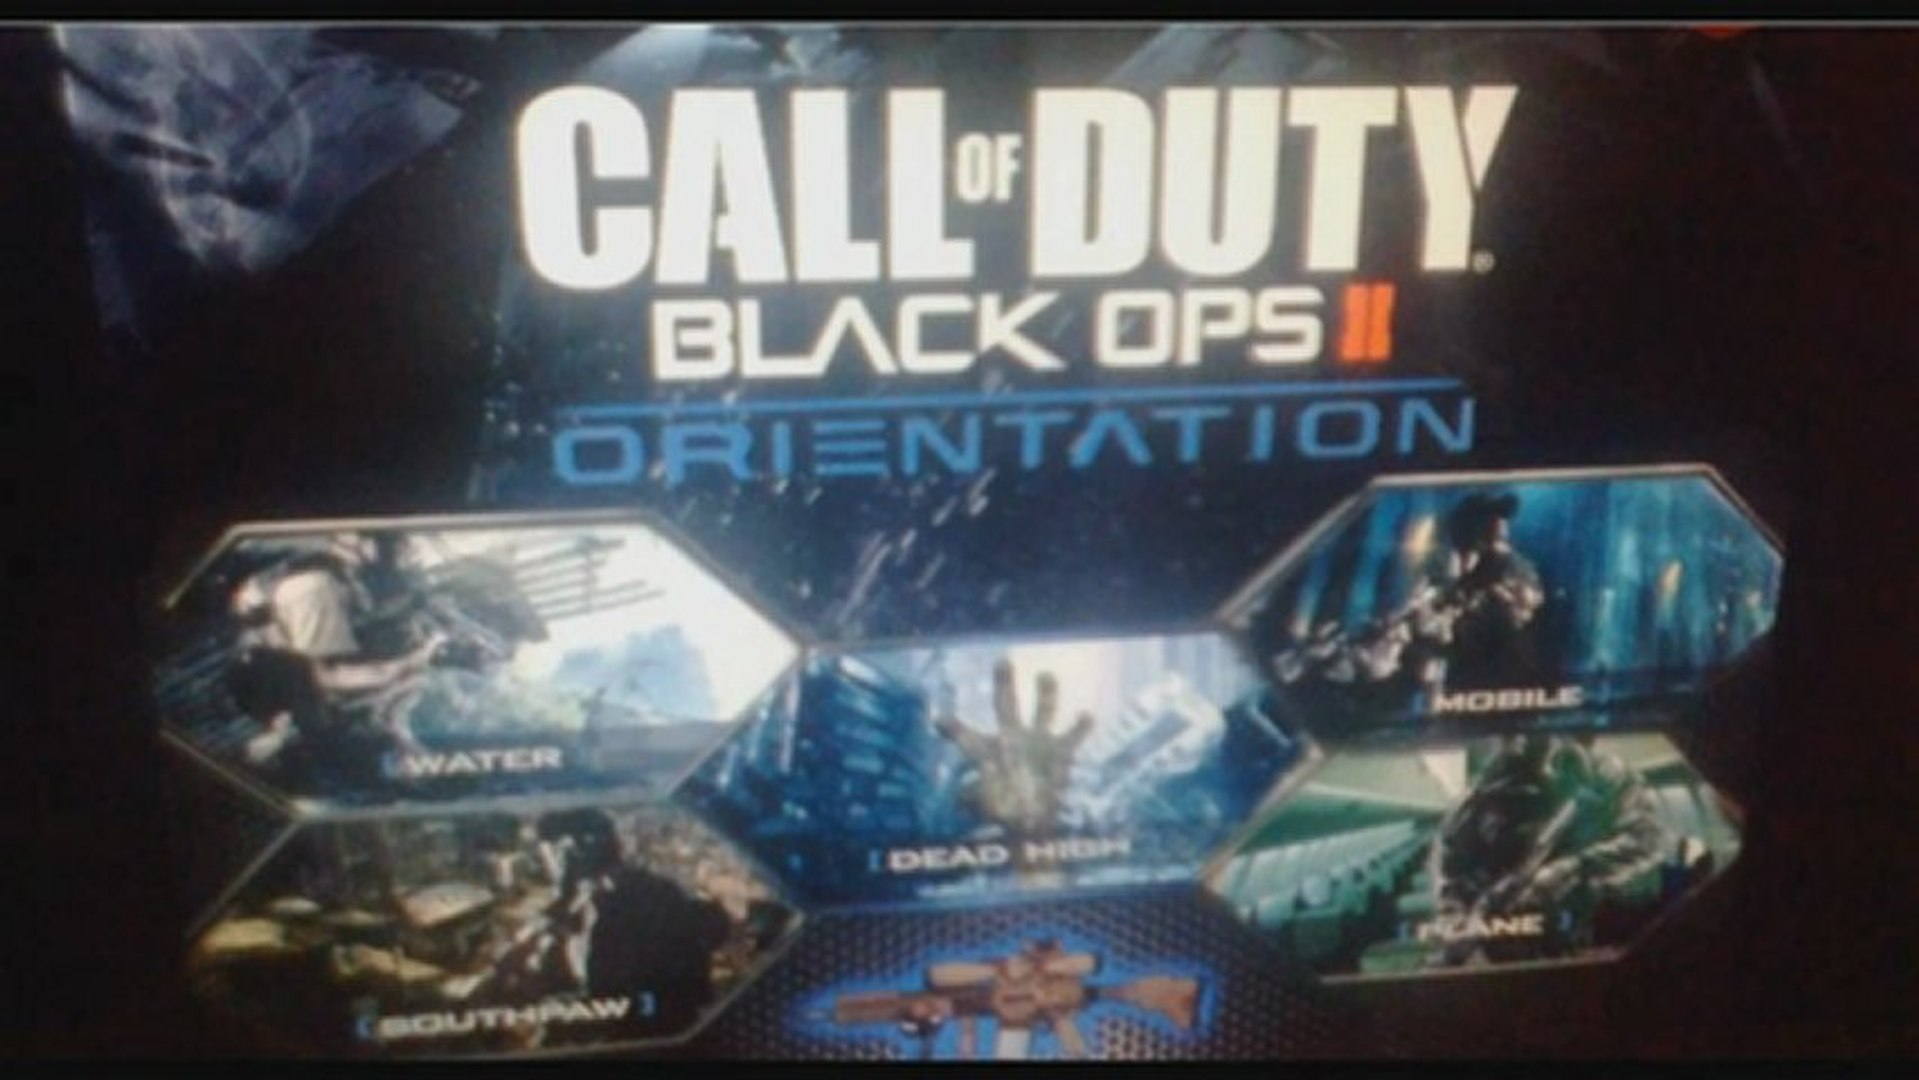 Black Ops 2 New Leaked Orientation Map Pack New Gun Dlc Online Maps Zombie Map Bo2 New Dlc Video Dailymotion